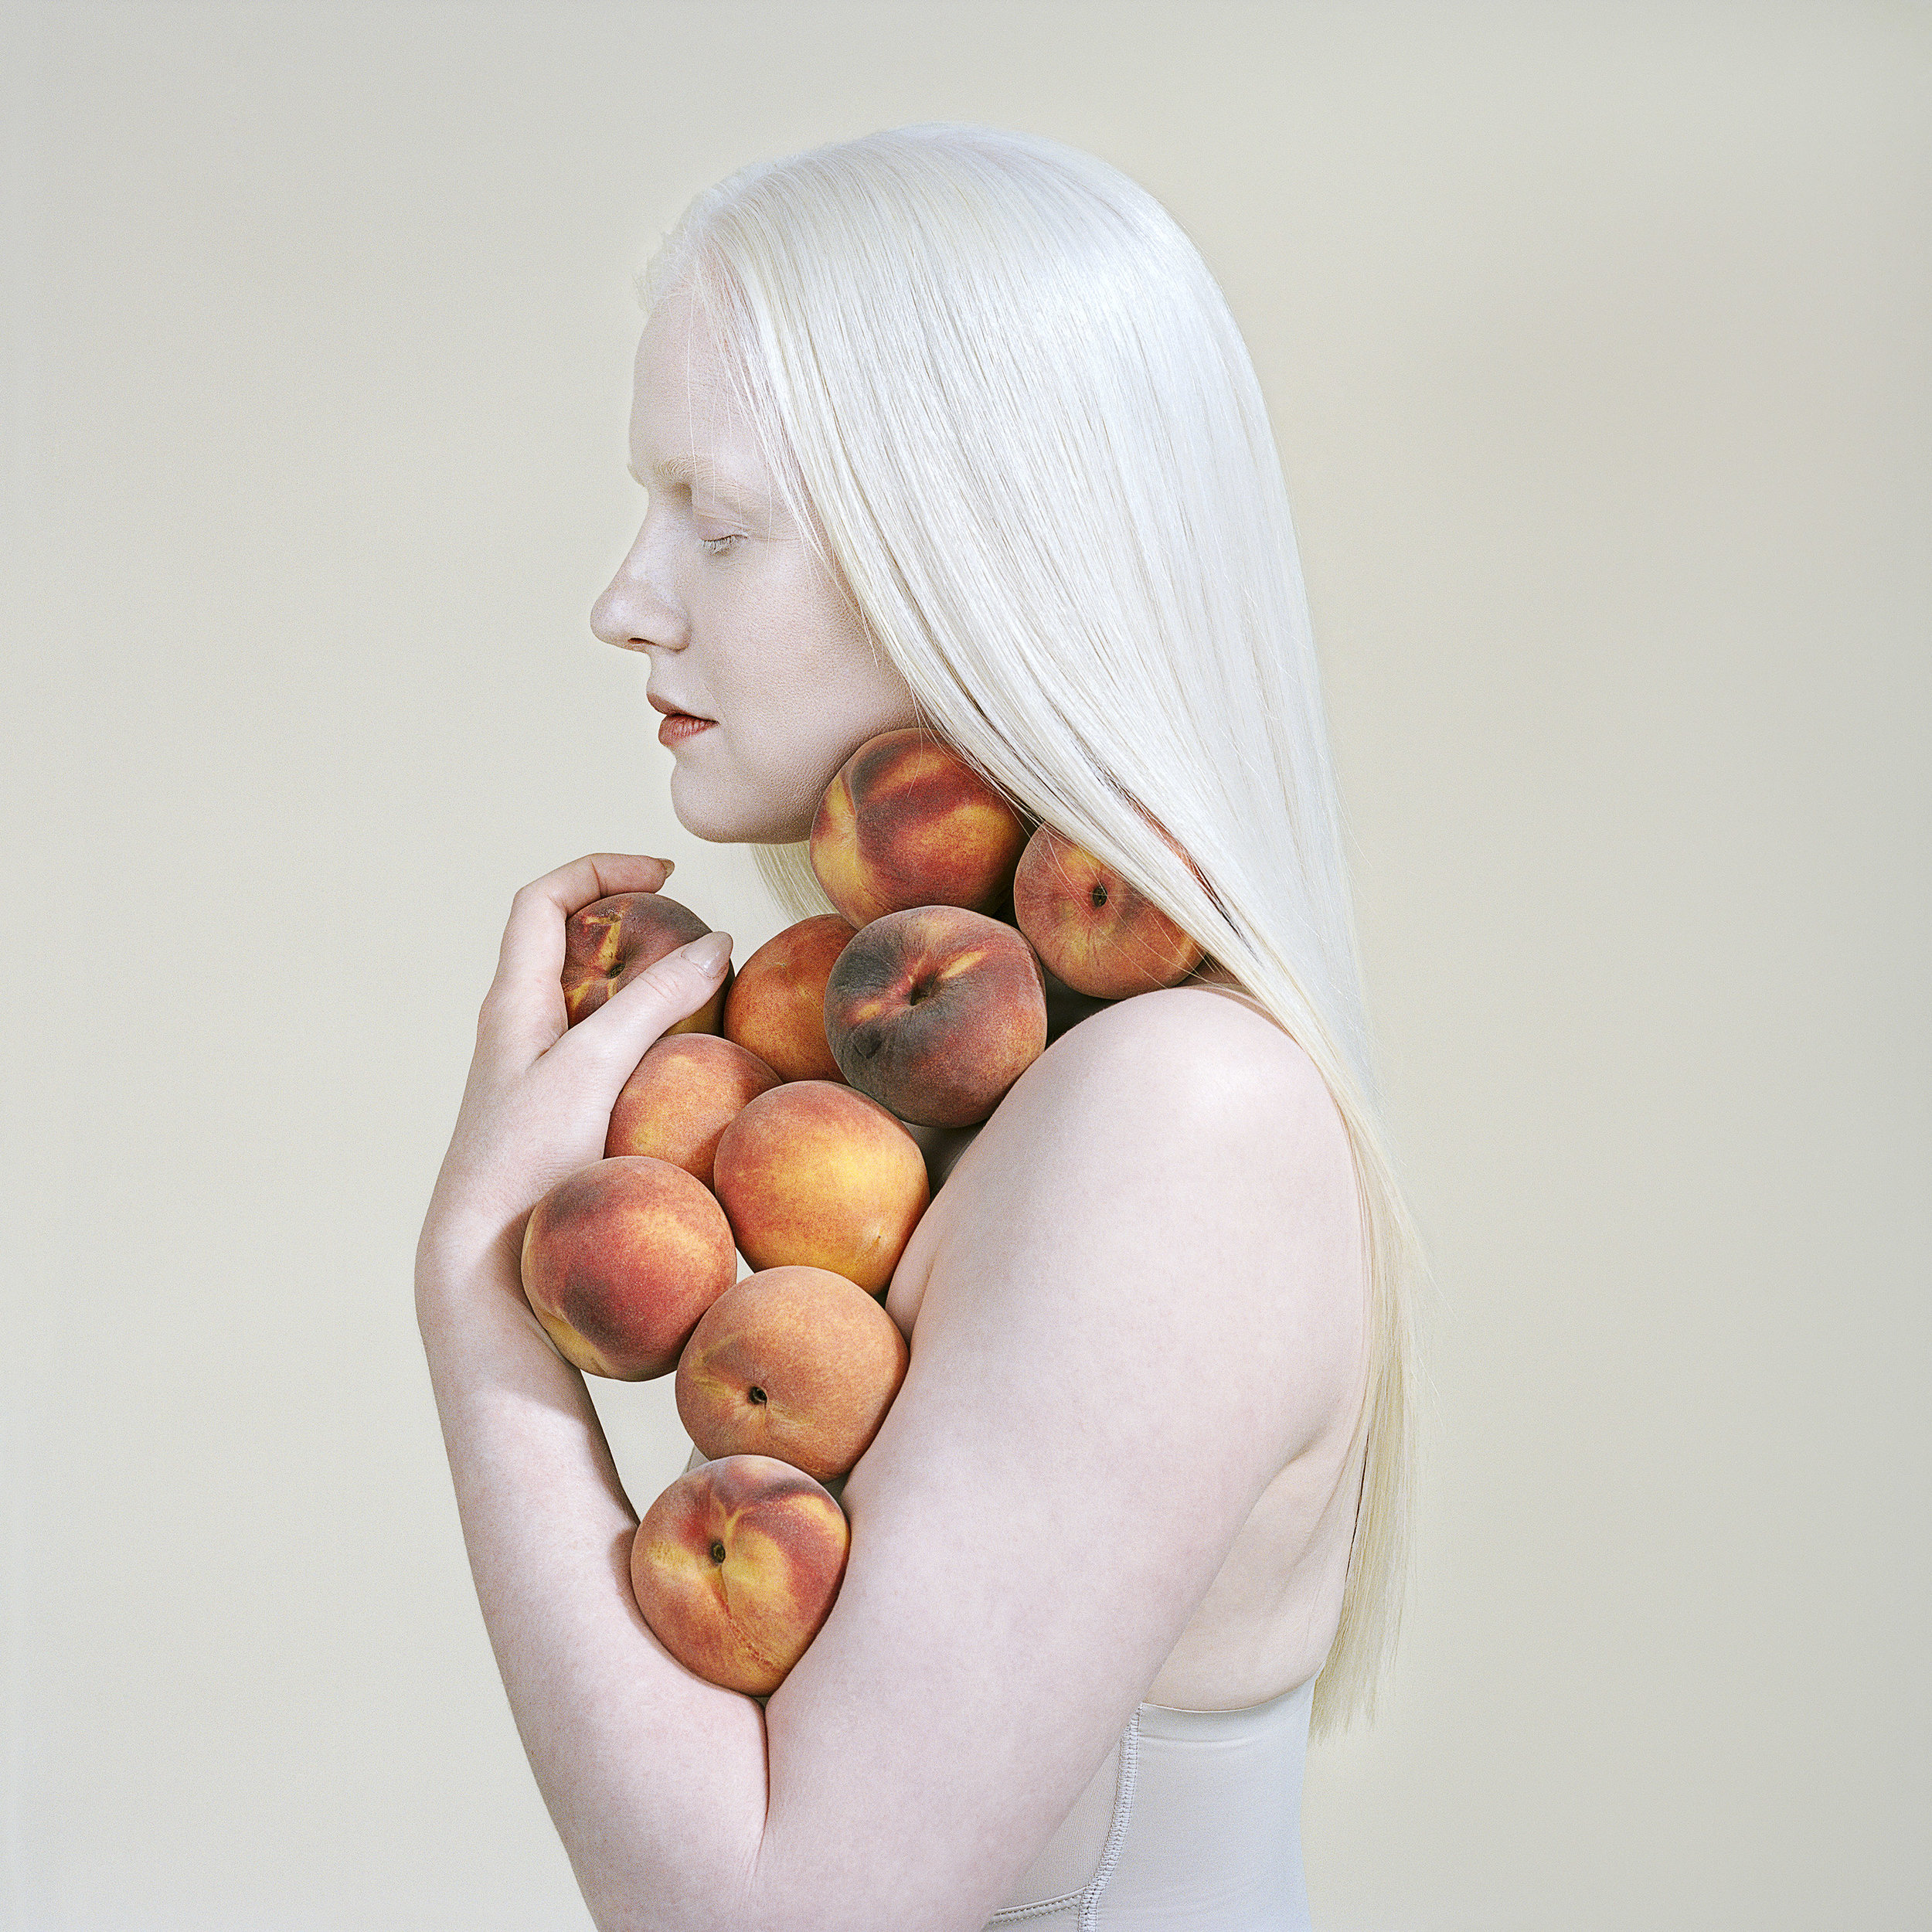 Bruised Peaches,  2018   by Petrina Hicks from  Still Life Studio  series.